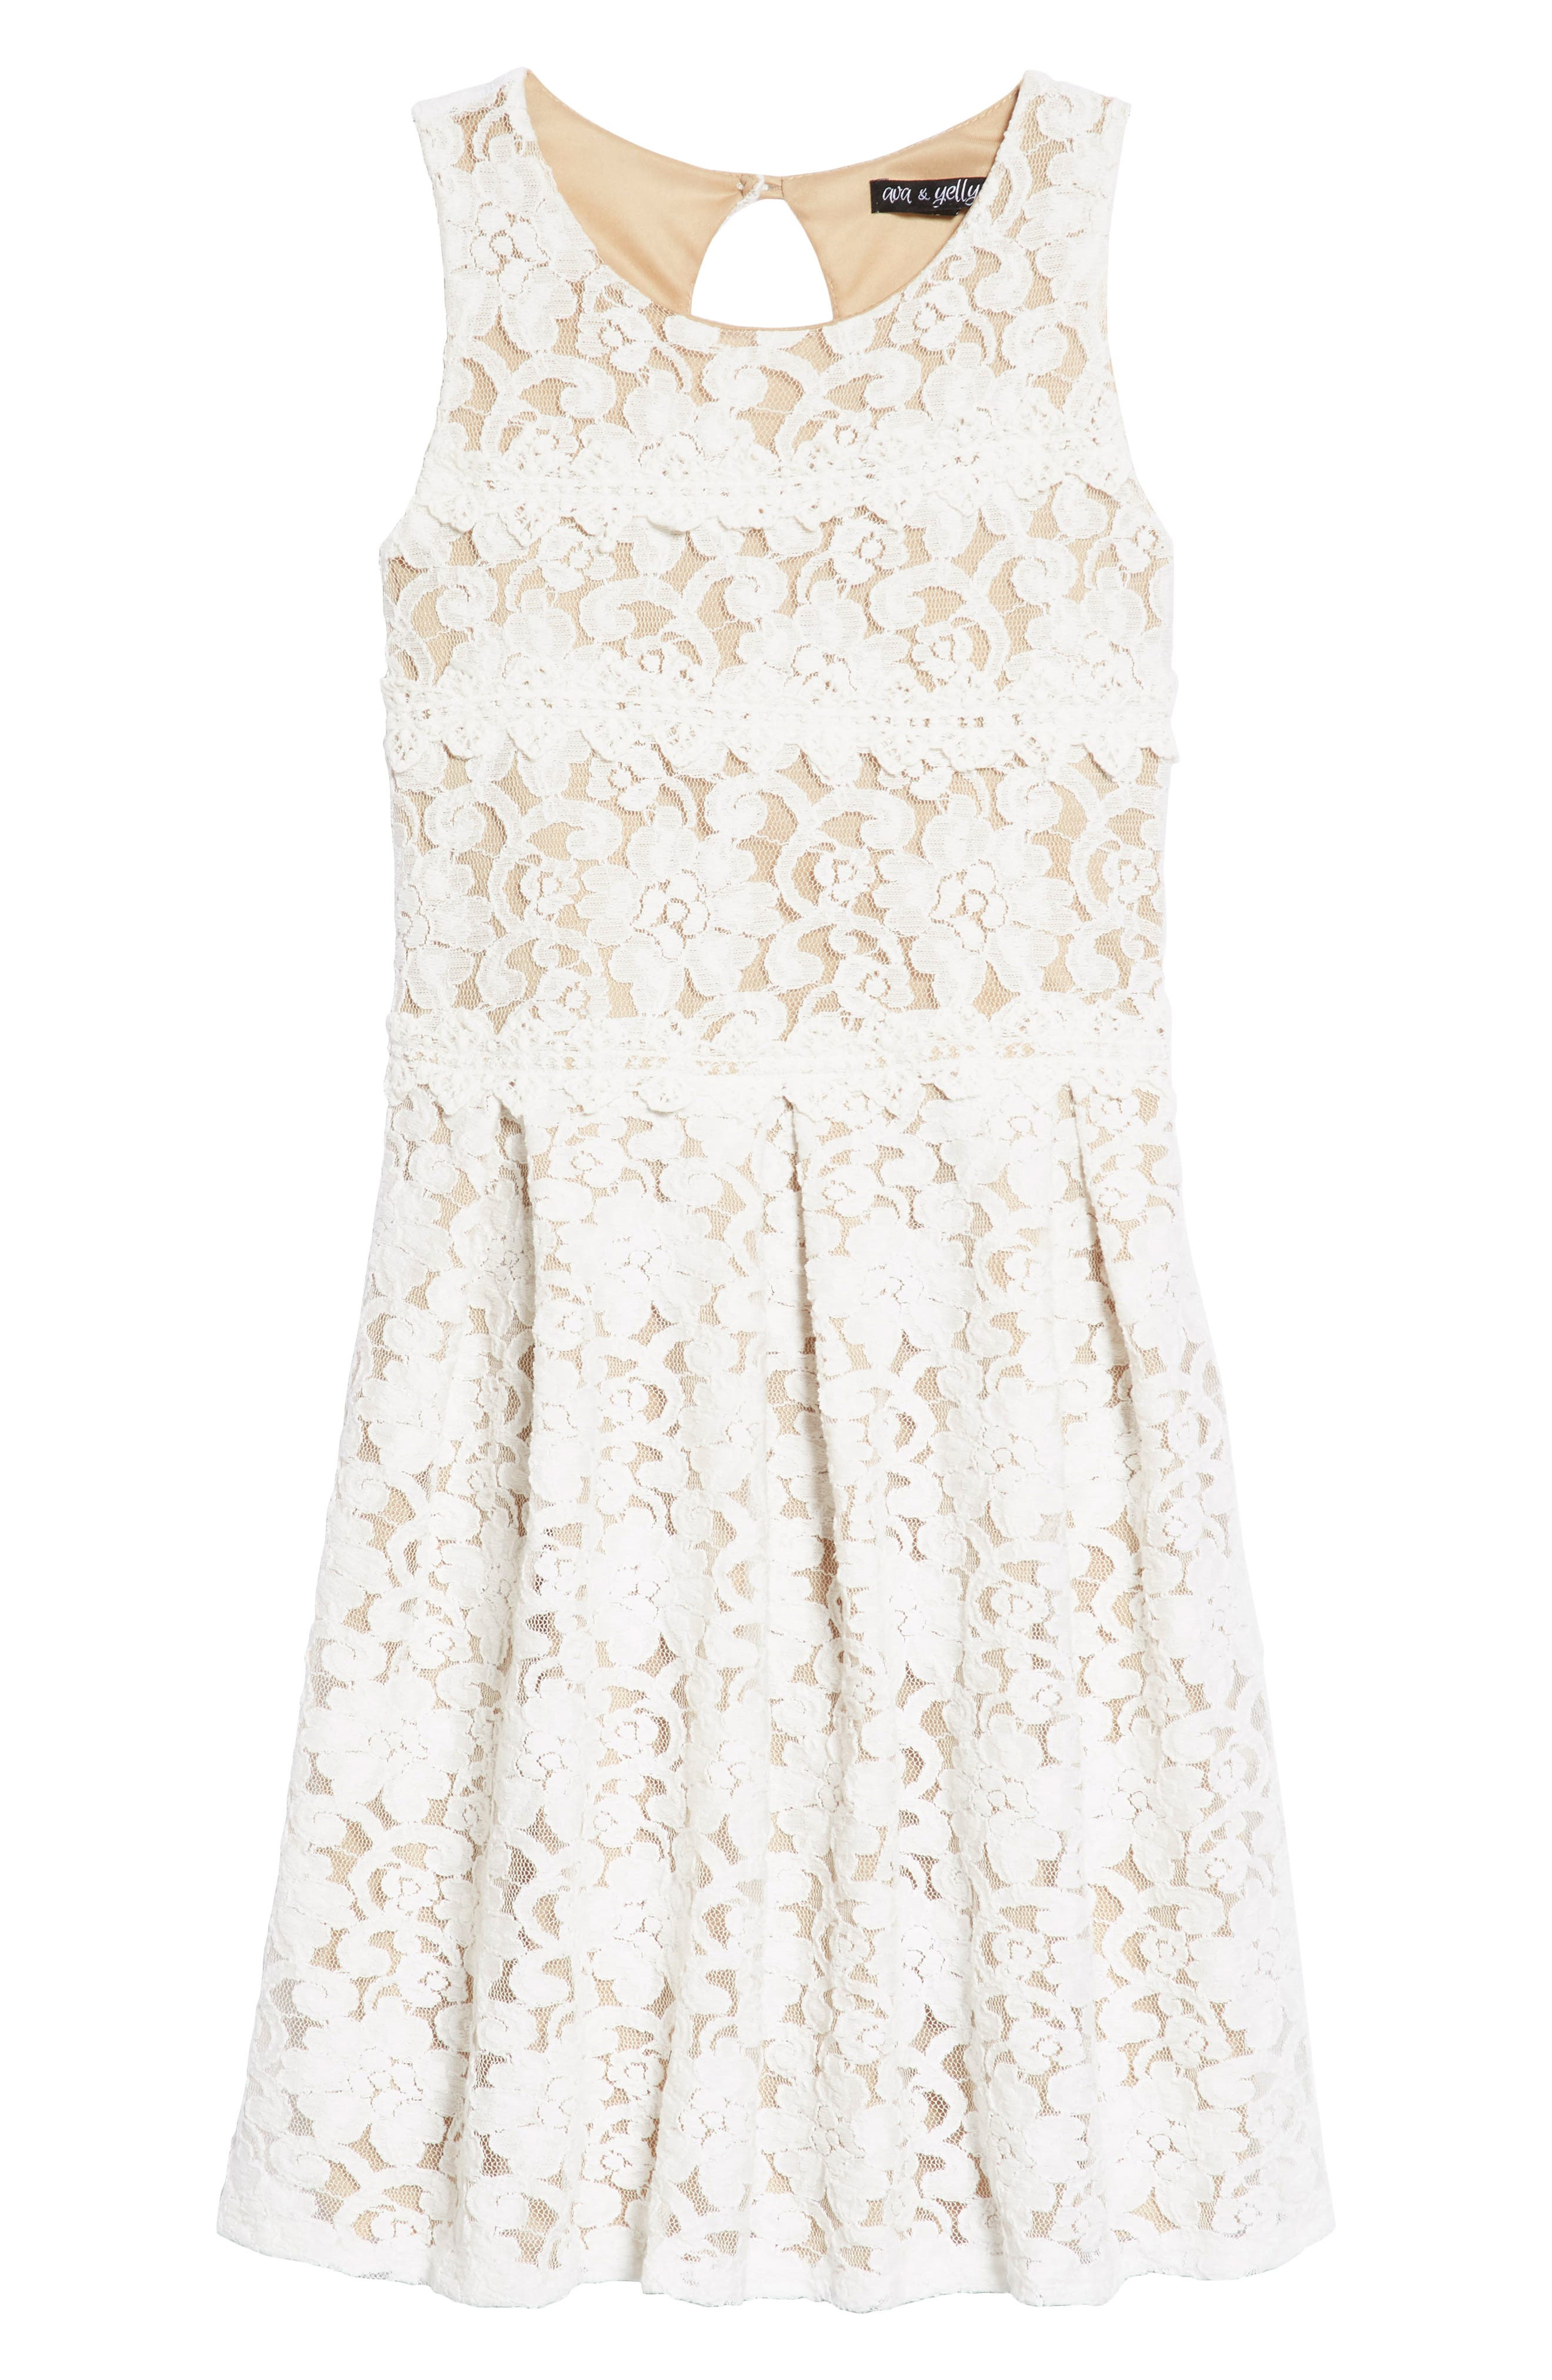 Two Tone Lace Skater Dress,                         Main,                         color, Ivory/ Tan